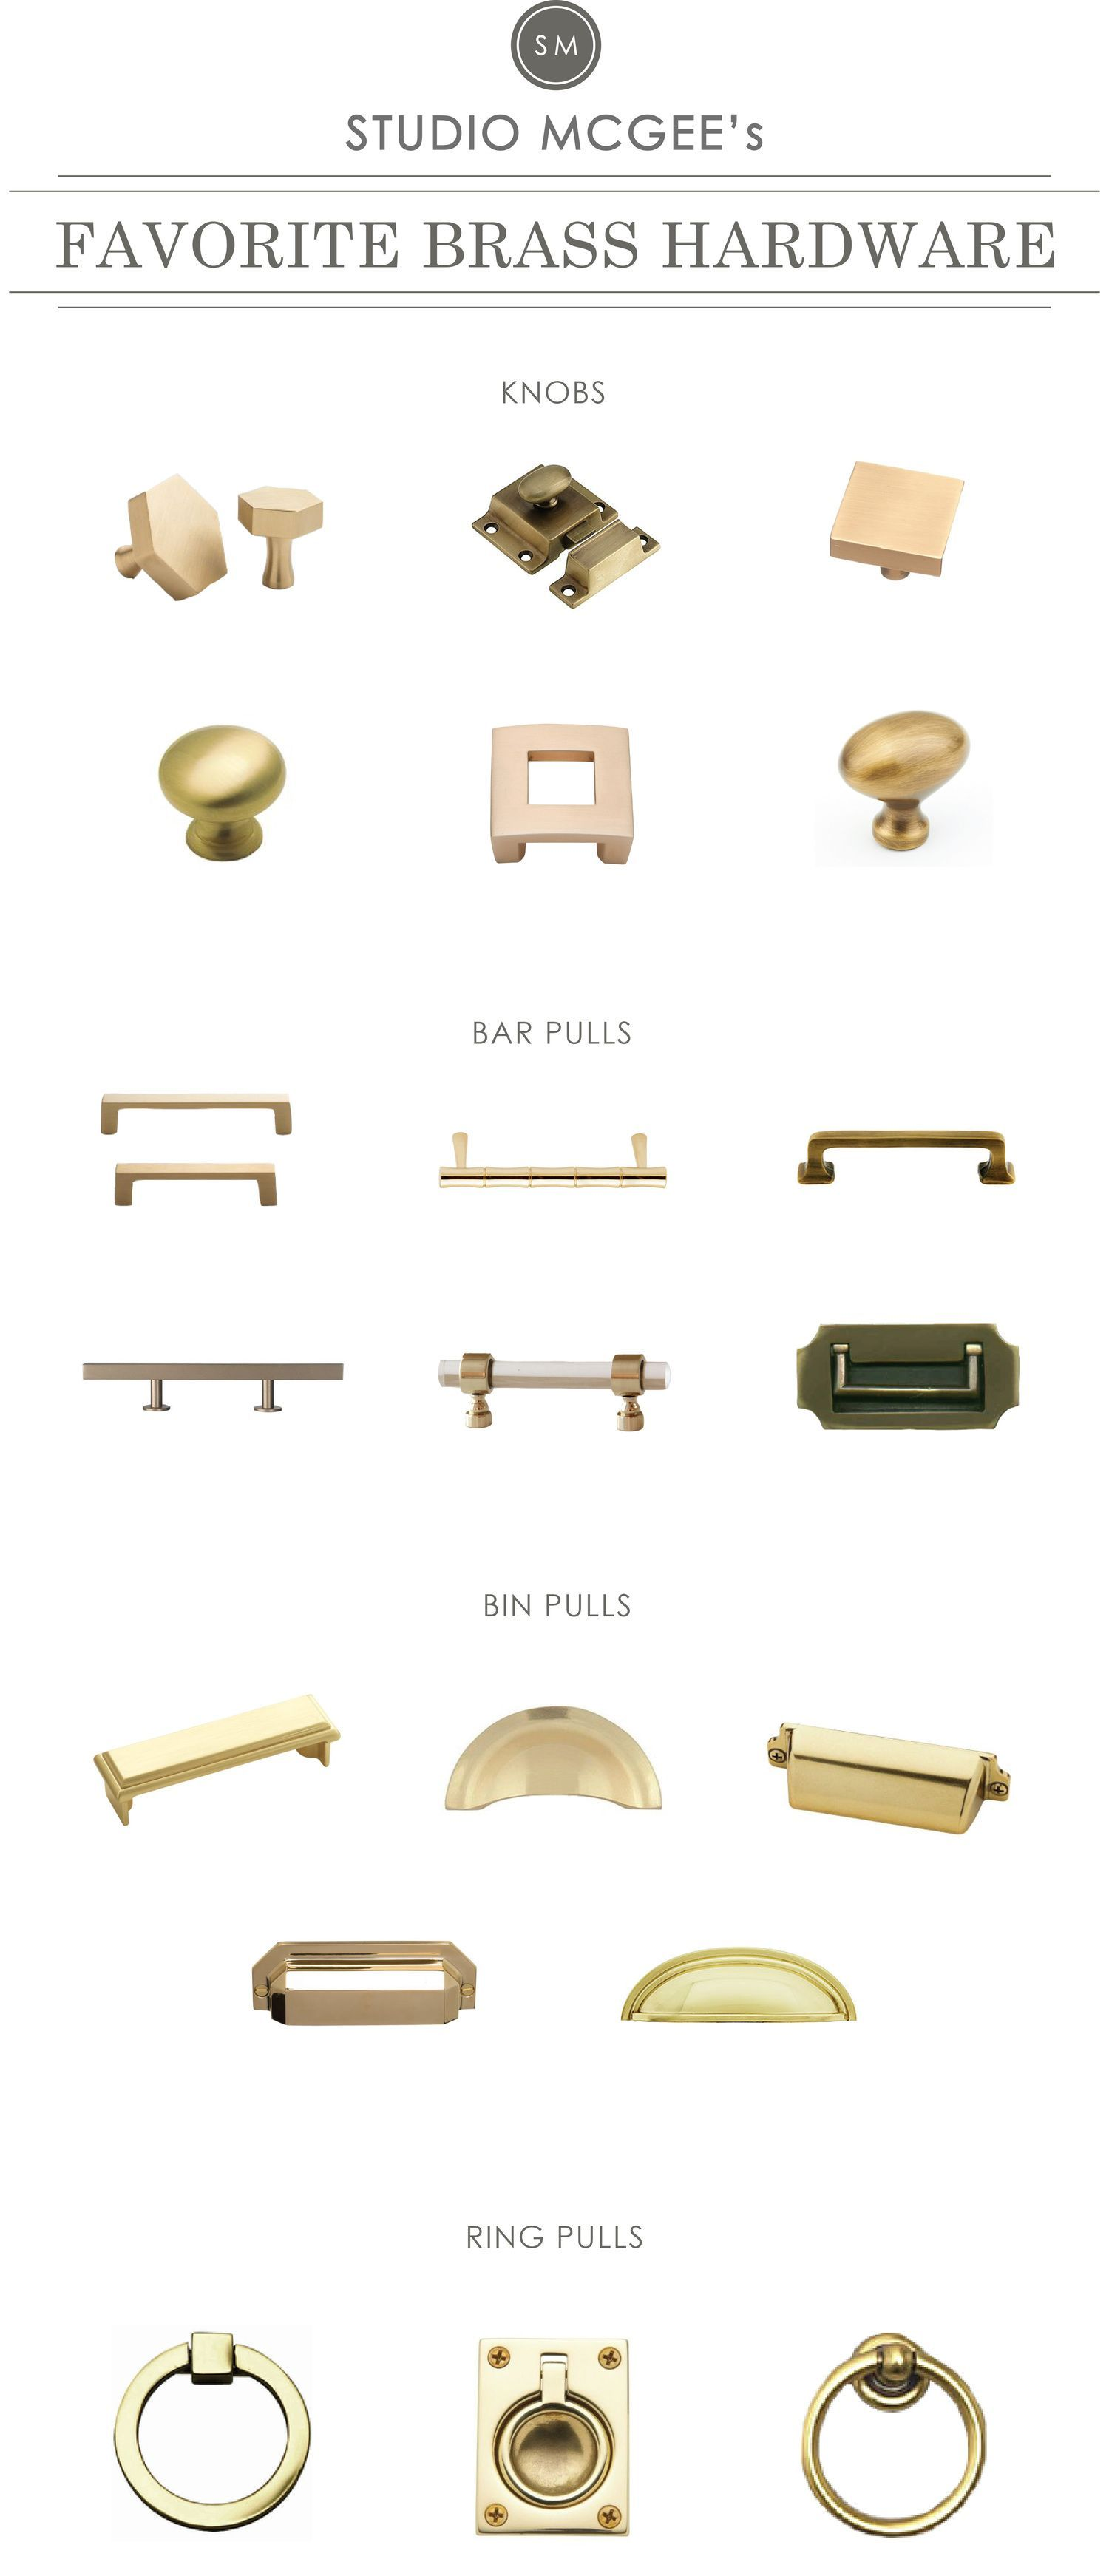 Roundup of Our Favorite Brass Hardware A roundup of Studio McGee's Favorite Brass HardwareA roundup of Studio McGee's Favorite Brass Hardware